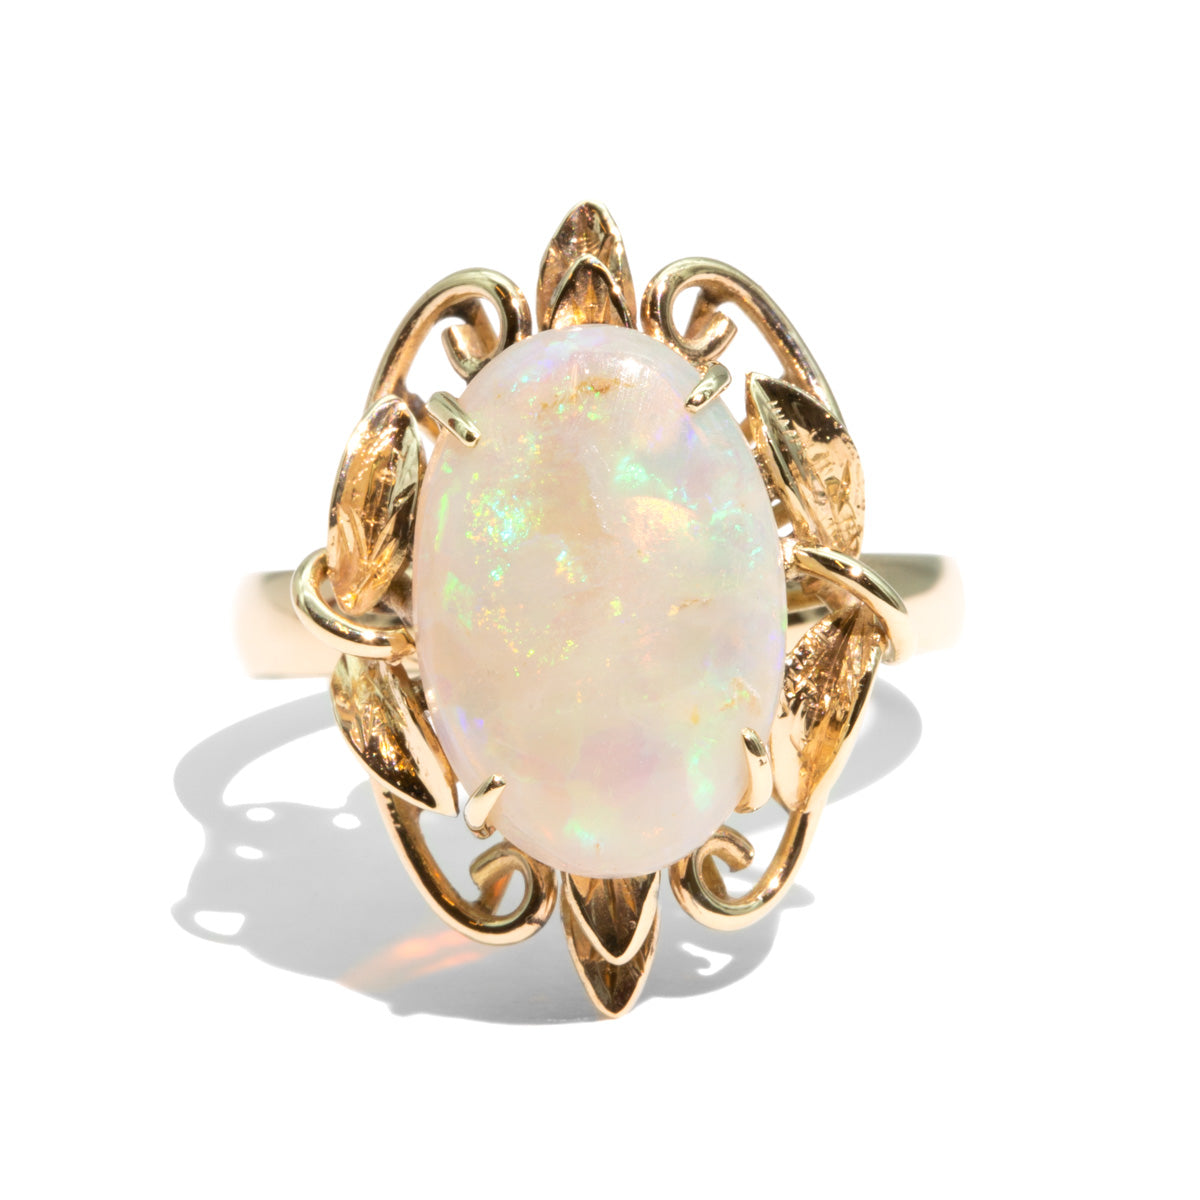 The Freya Vintage Opal Ring